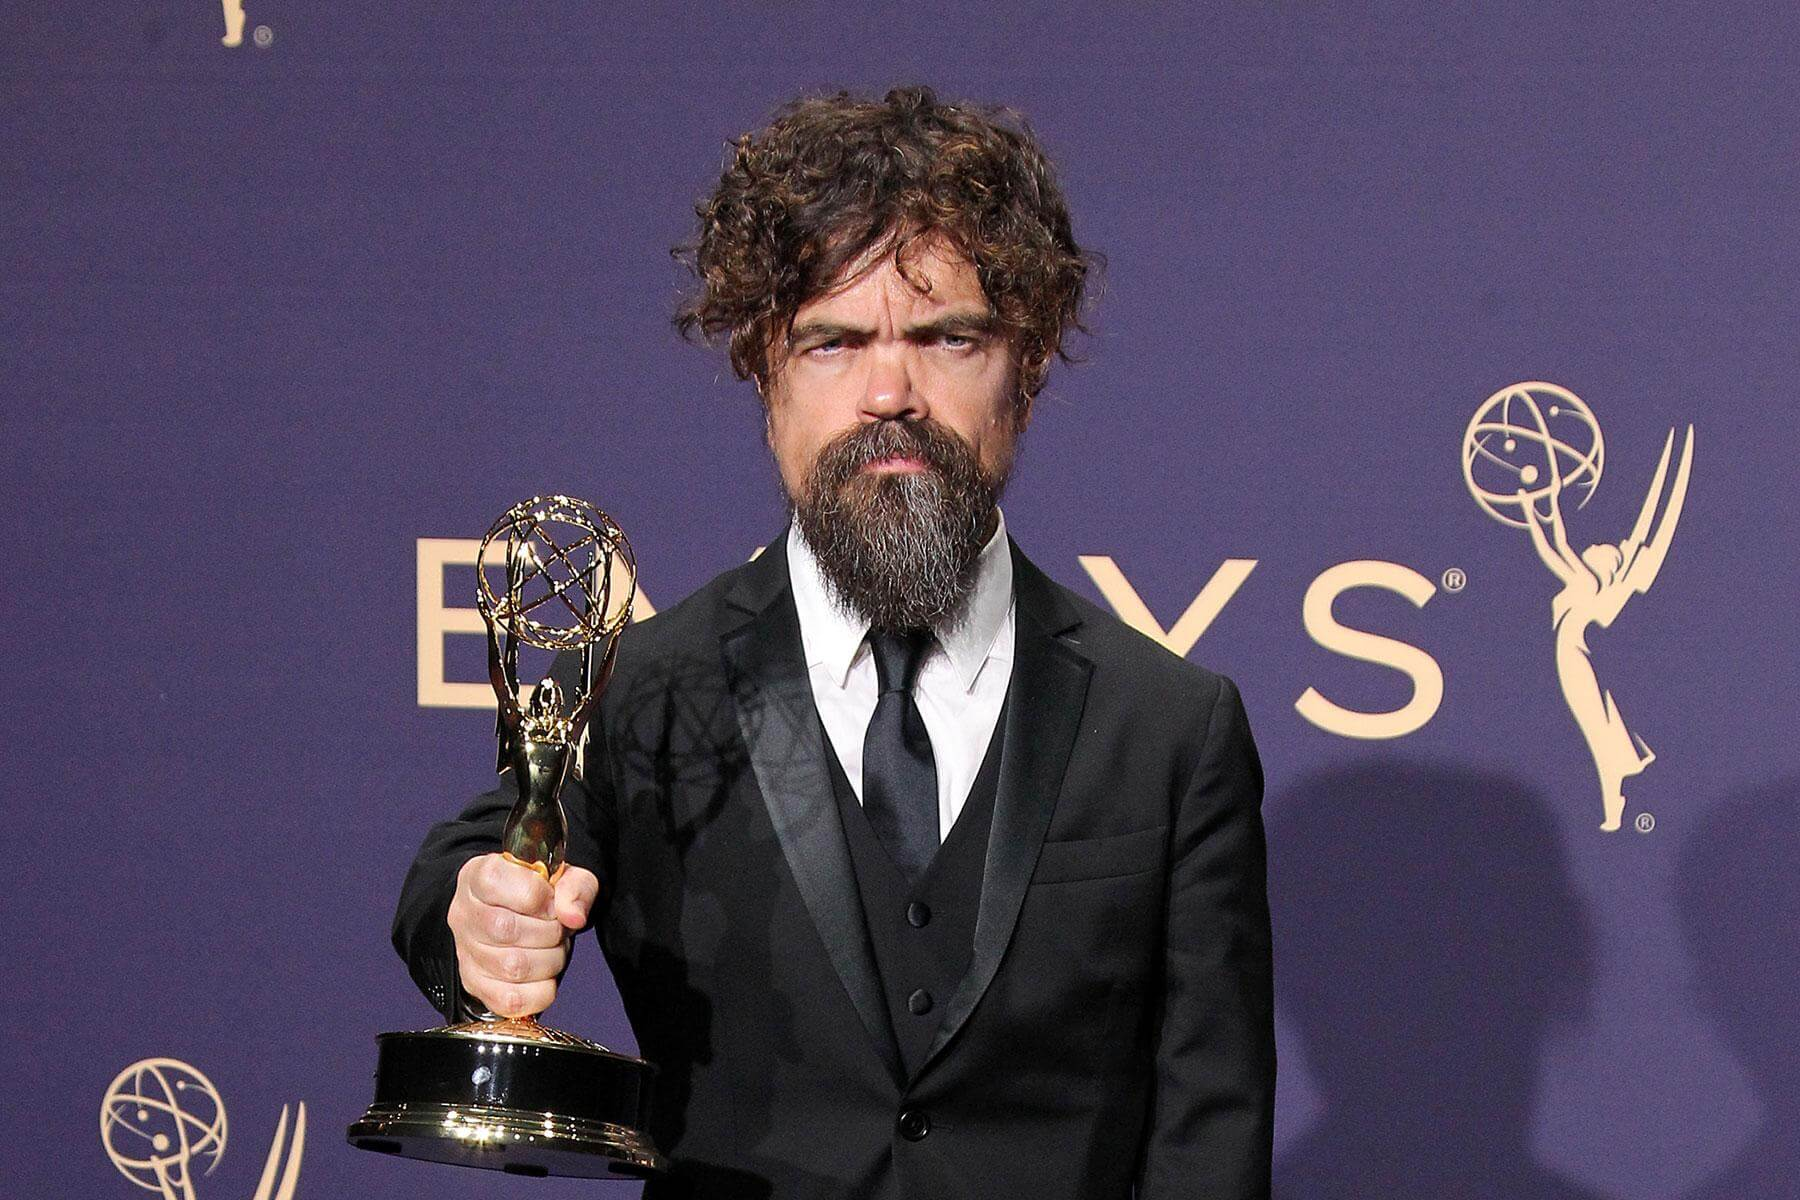 Peter Dinklage gained worldwide recognition for his outstanding portrayal of Tyrion Lannister in GAME OF THRONES